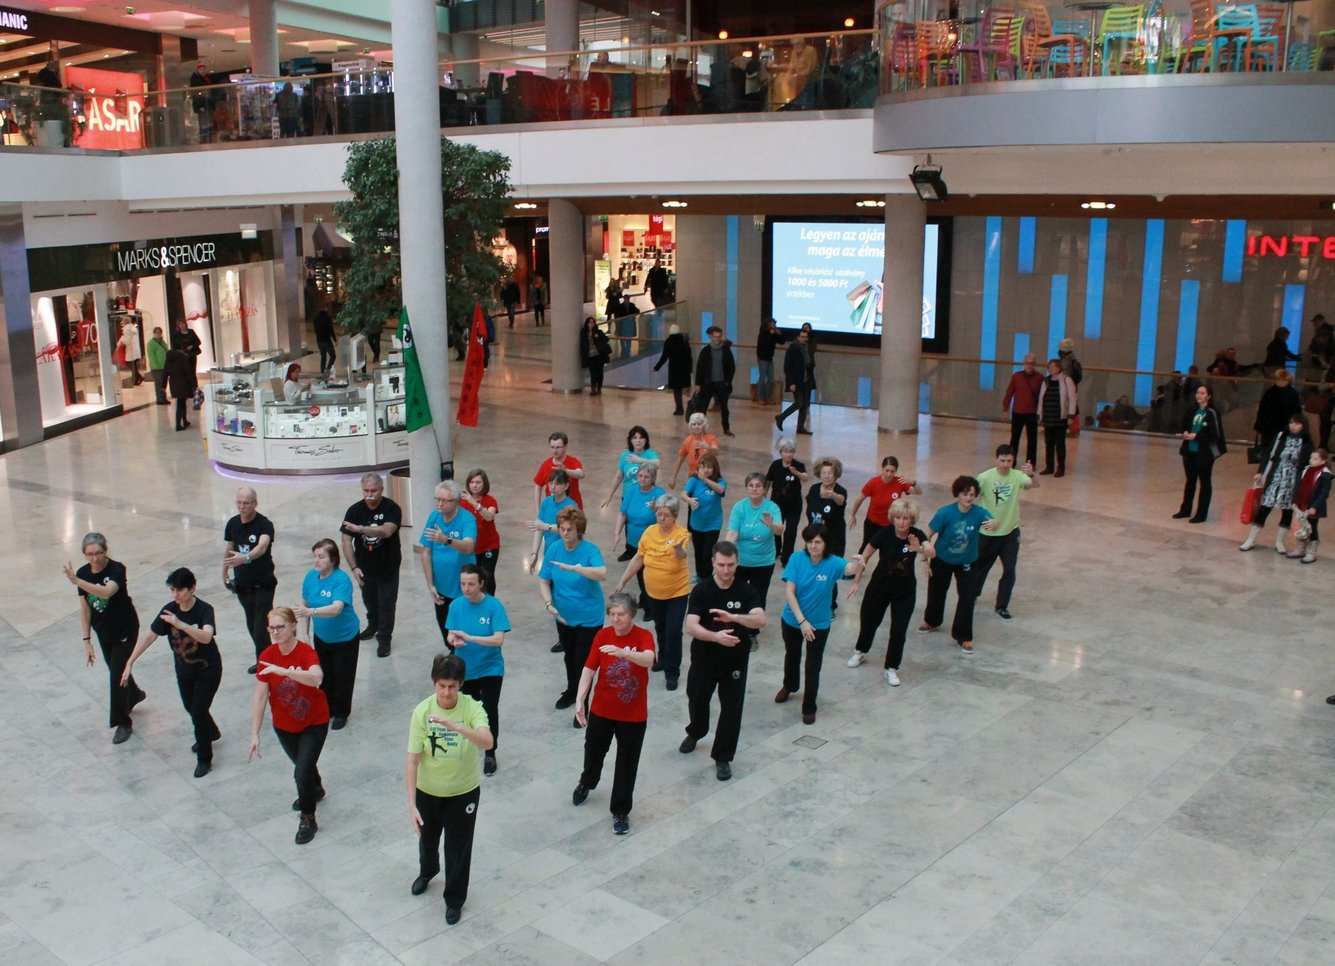 Finding Harmony and Tranquility in the Shopping Mall